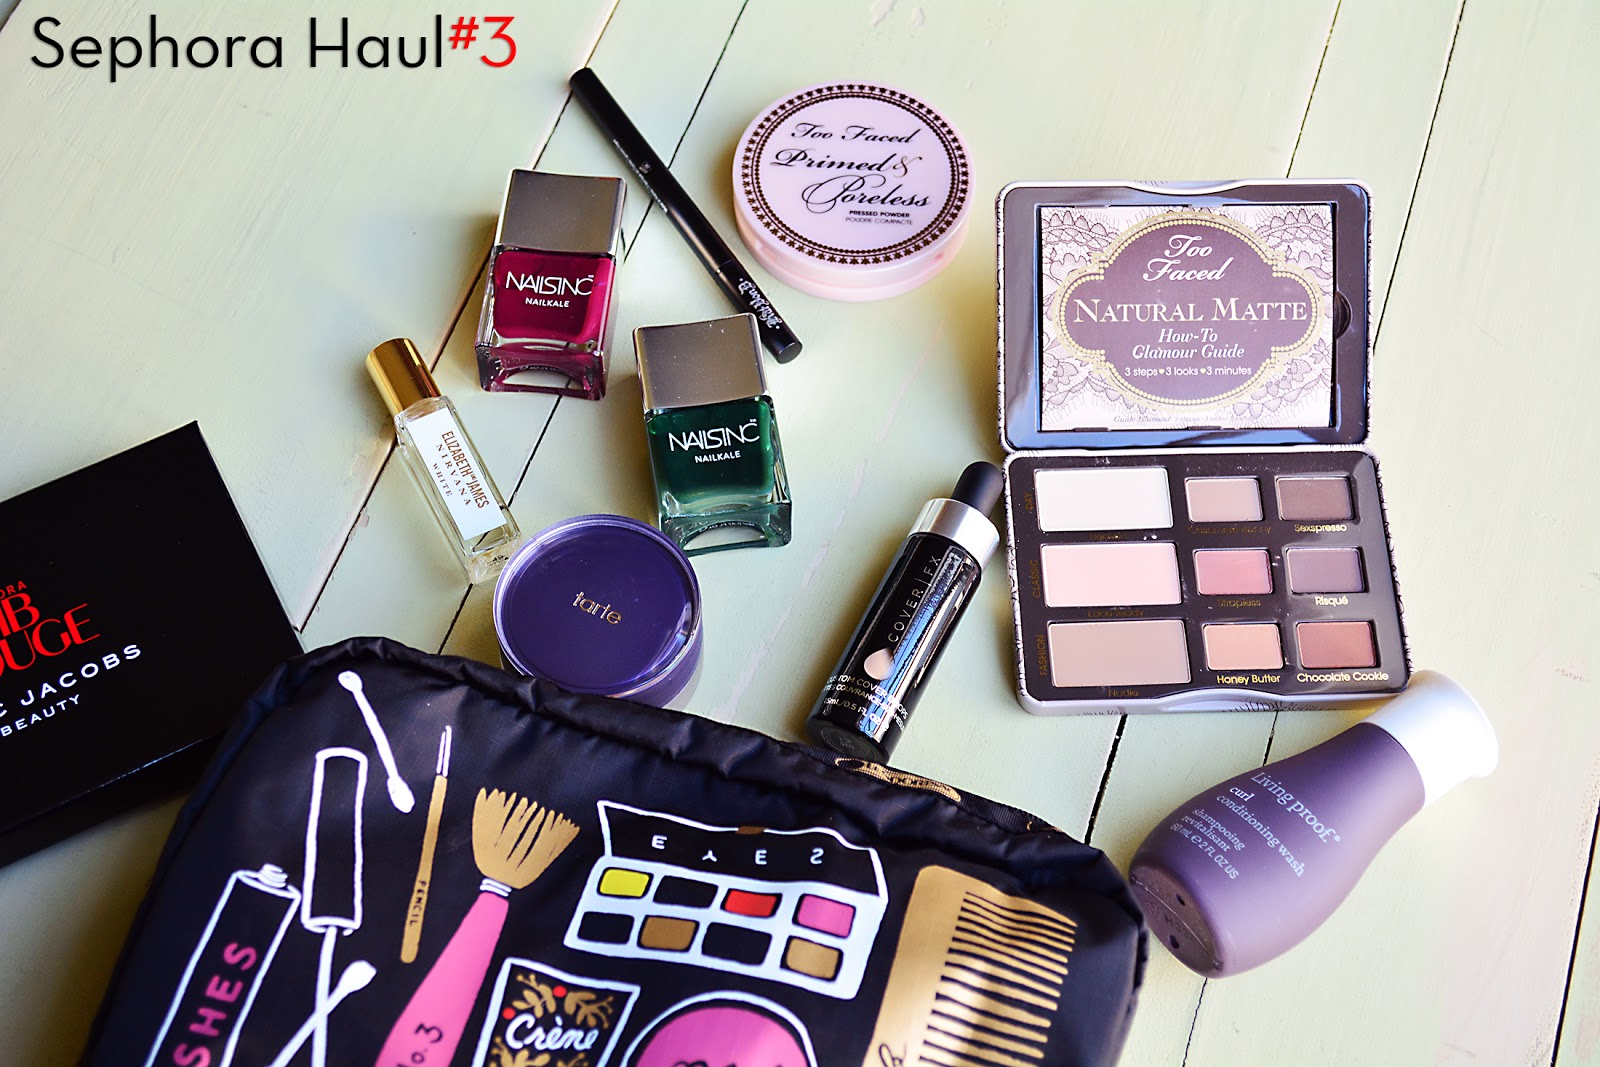 The Office Chic: Sephora VIB Rouge 2015 Spring Sale Haul